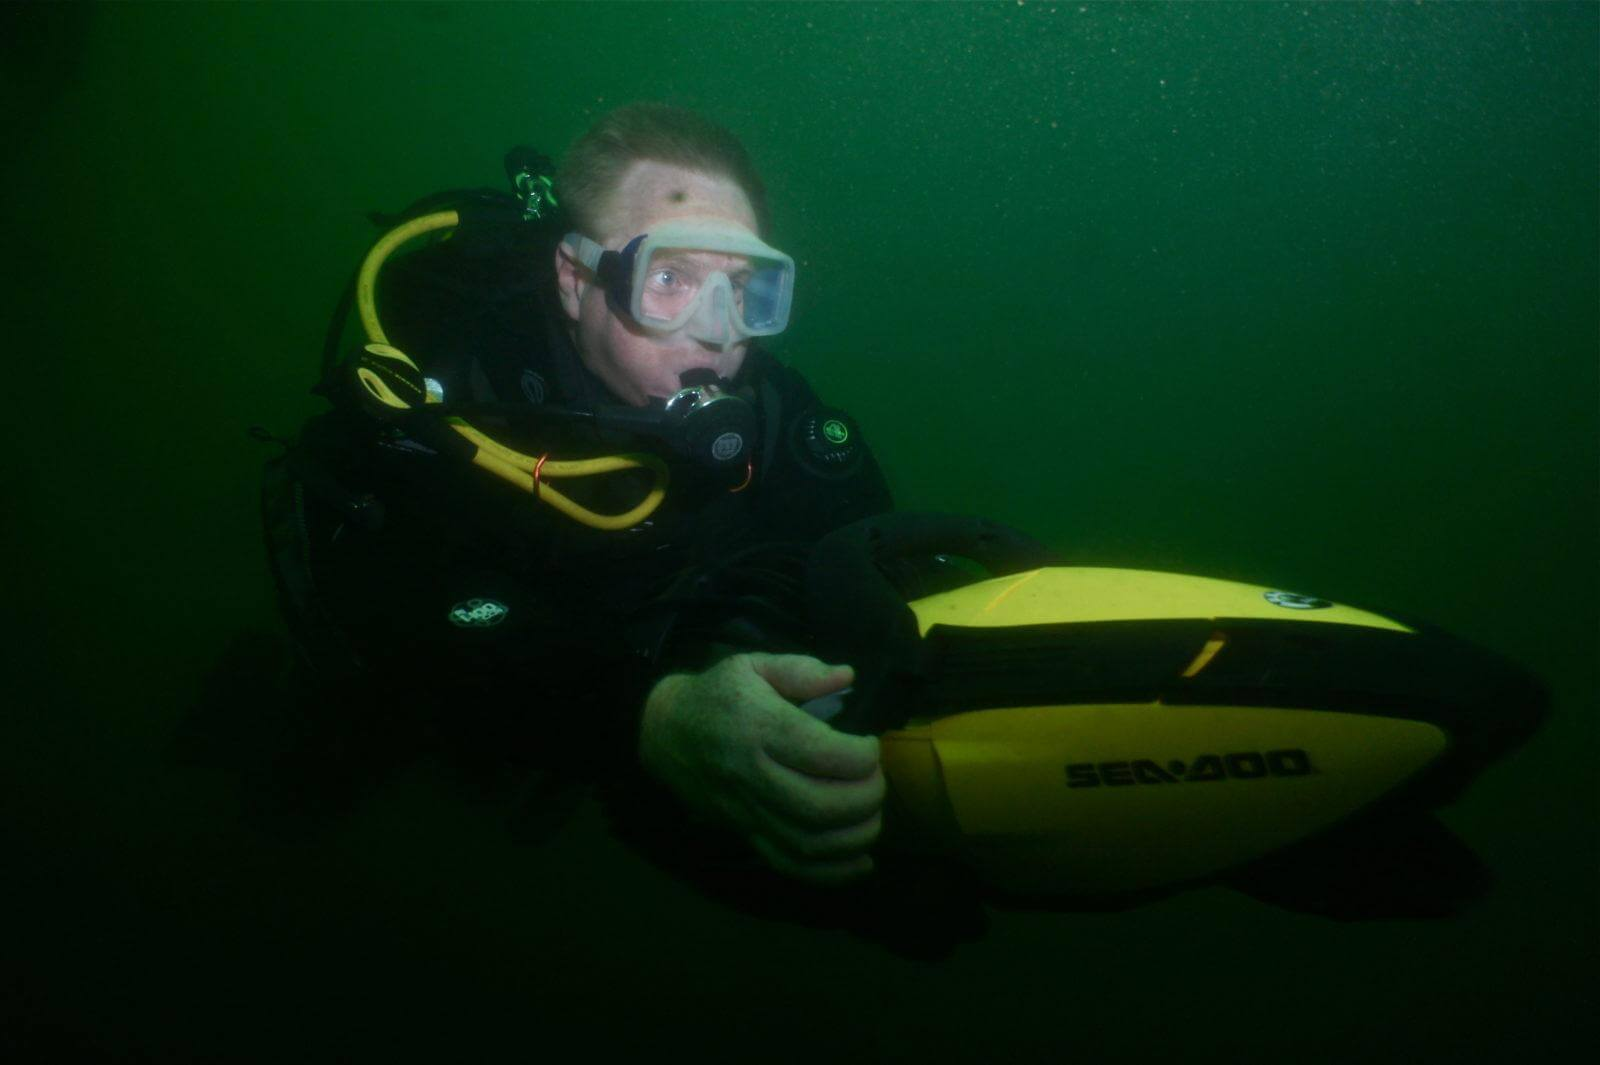 Scuba Diver using an Underwater Scooter